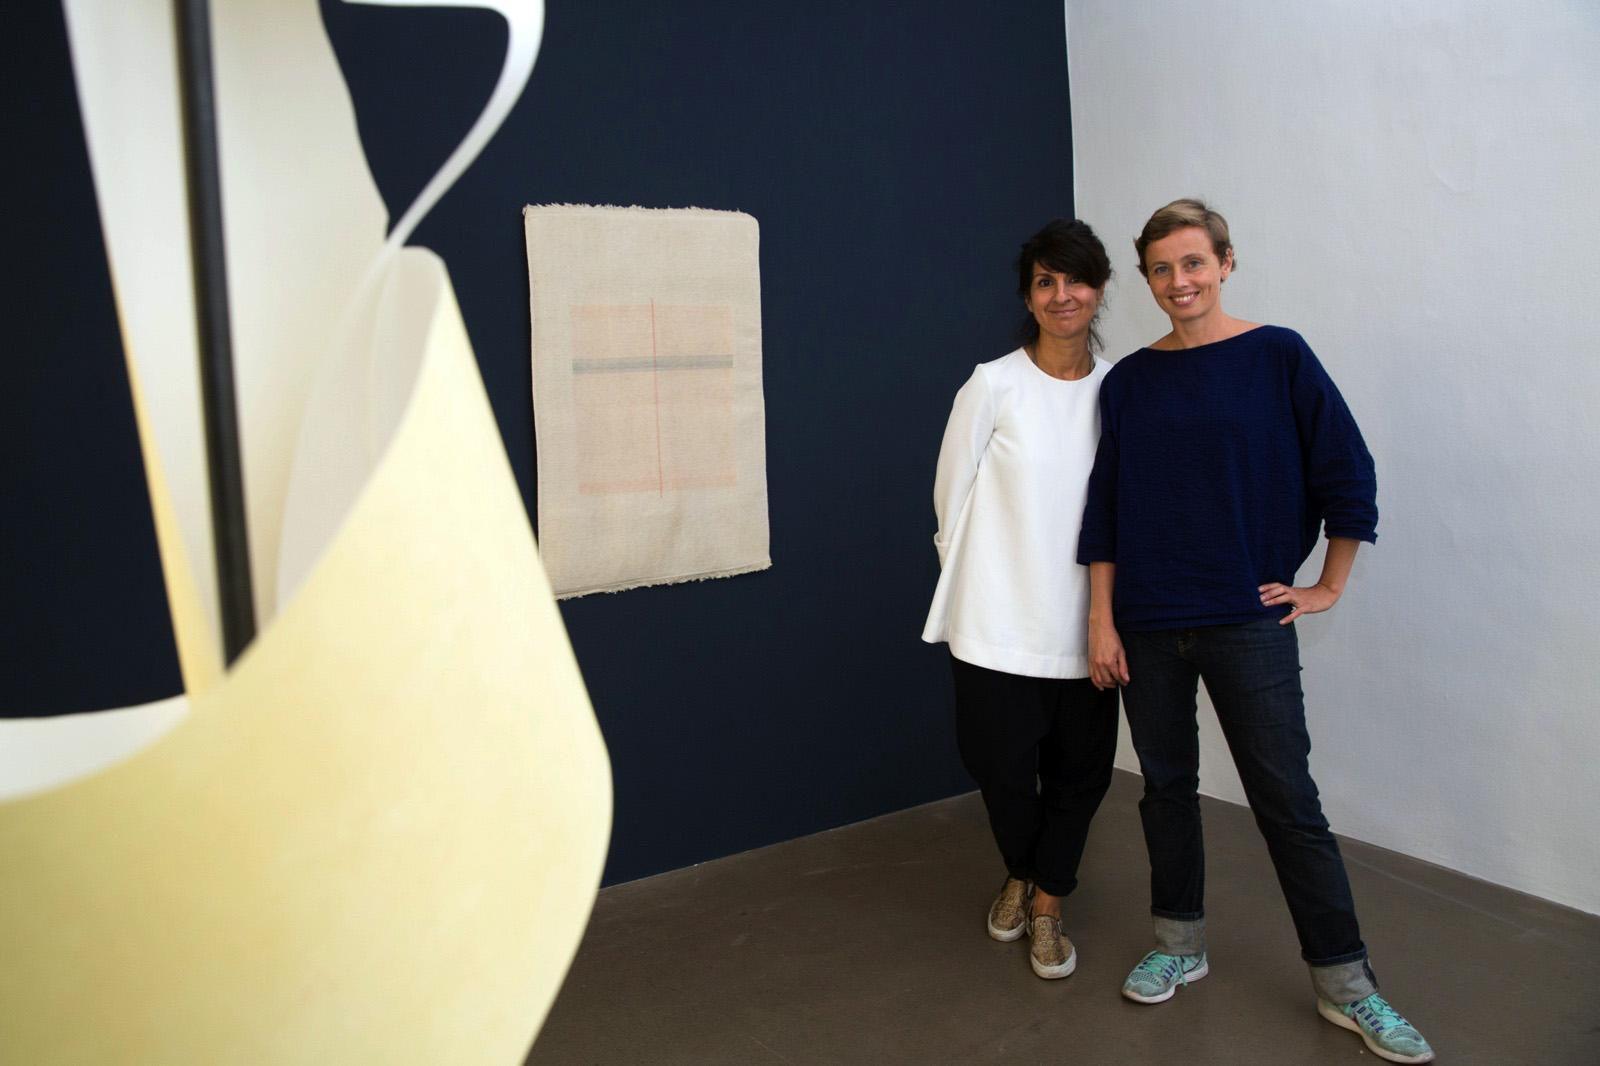 Artists Haleh Redjaian & Sofie Thorsen Krobath Galerie curated by Bettina Steinbrügge Photo: eSeL